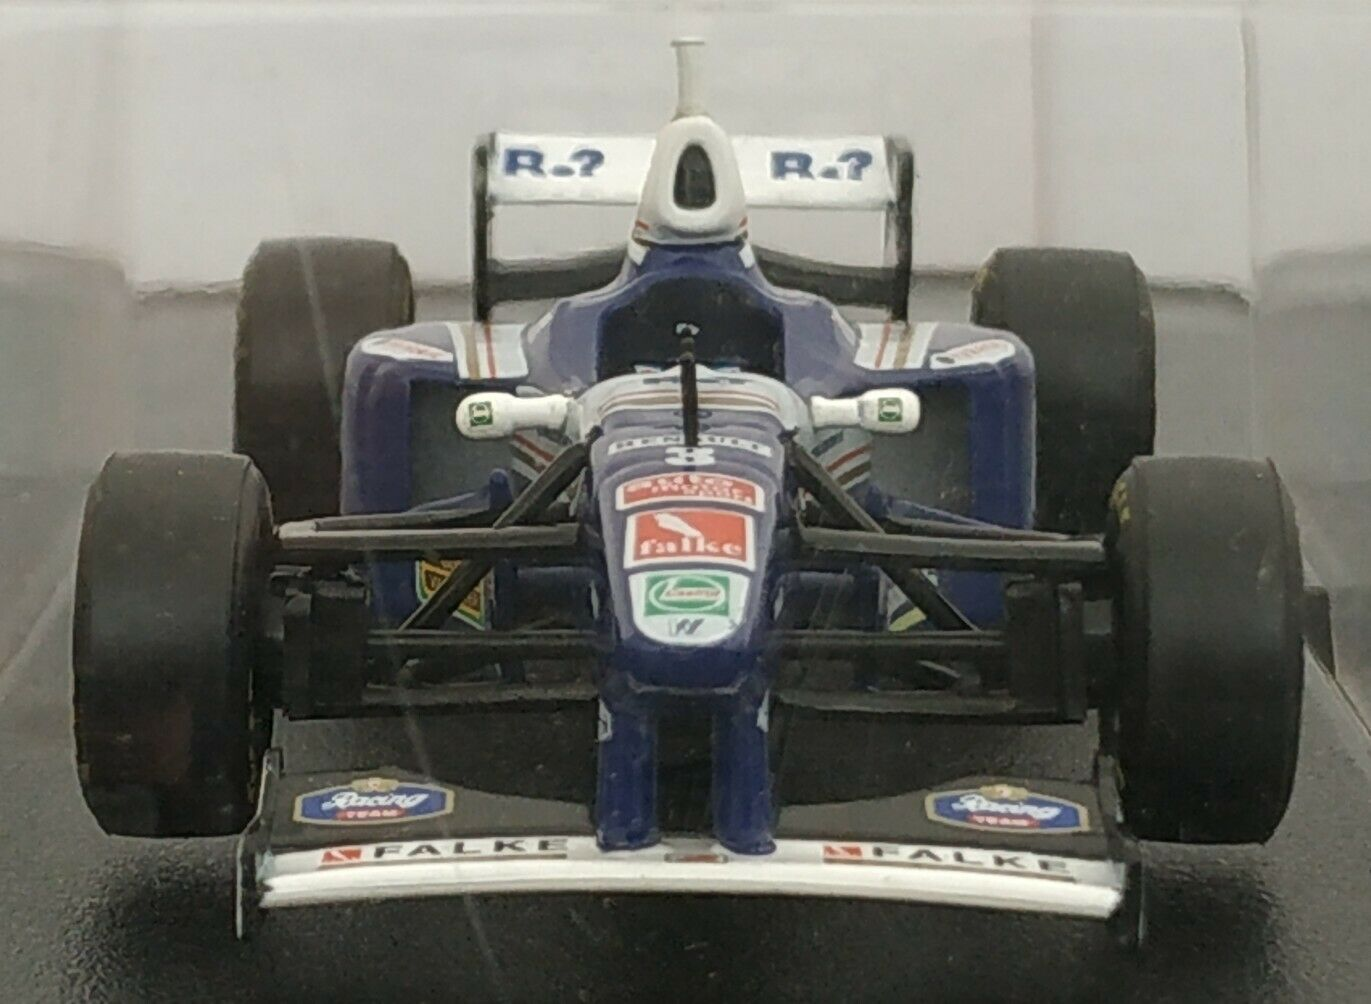 1 43 WILLIAMS RENAULT FW19 1997 F1 FORMULA 1 COCHE DE METAL A ESCALA